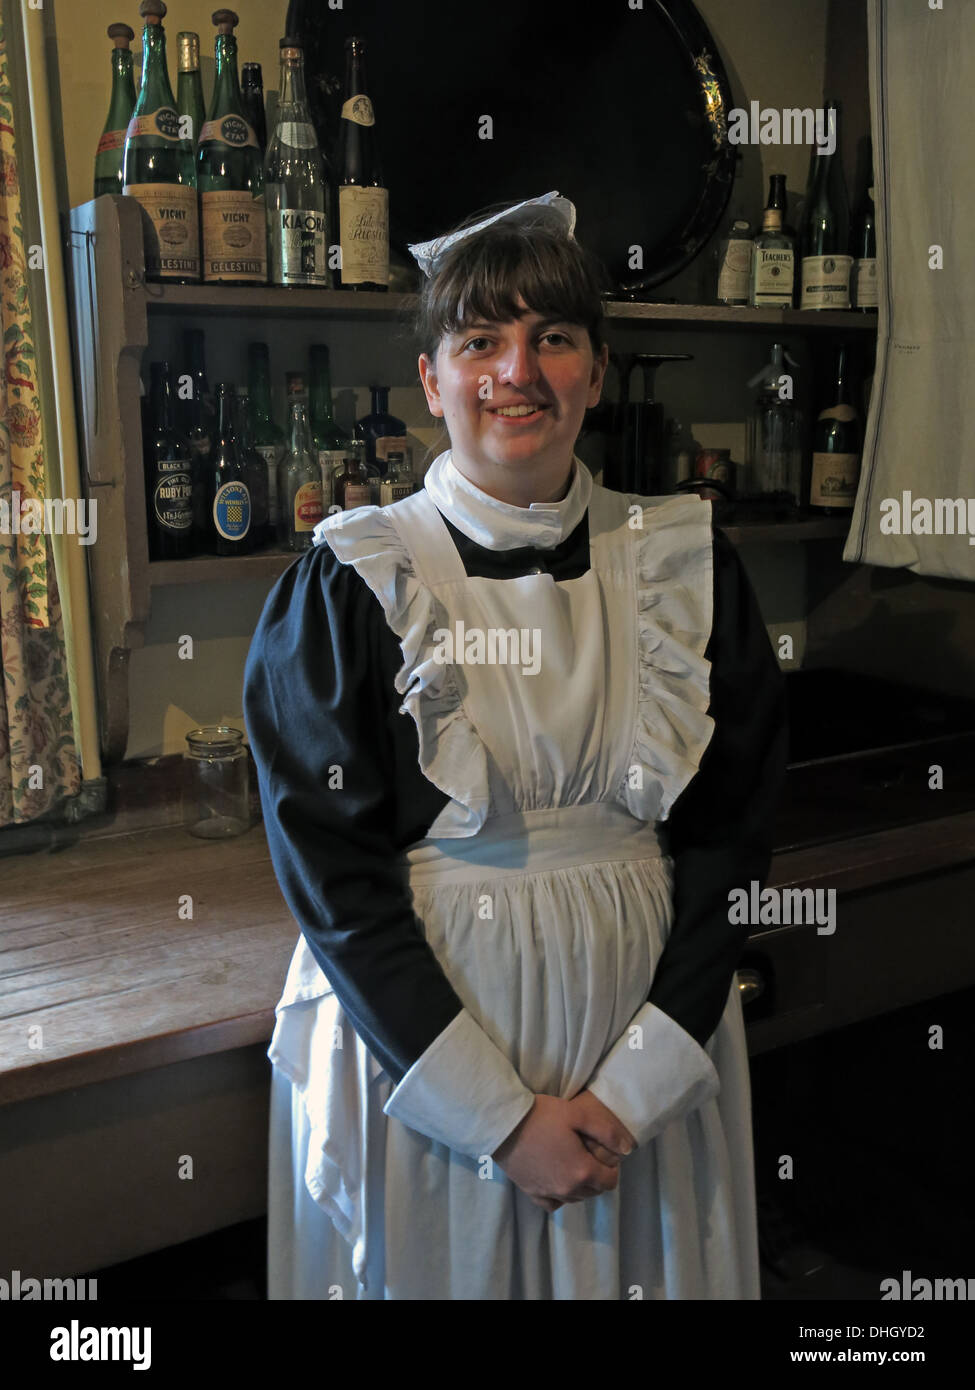 Stately Home Kitchen Maid Servant Dunham Massey  NT Cheshire England UK Stock Photo